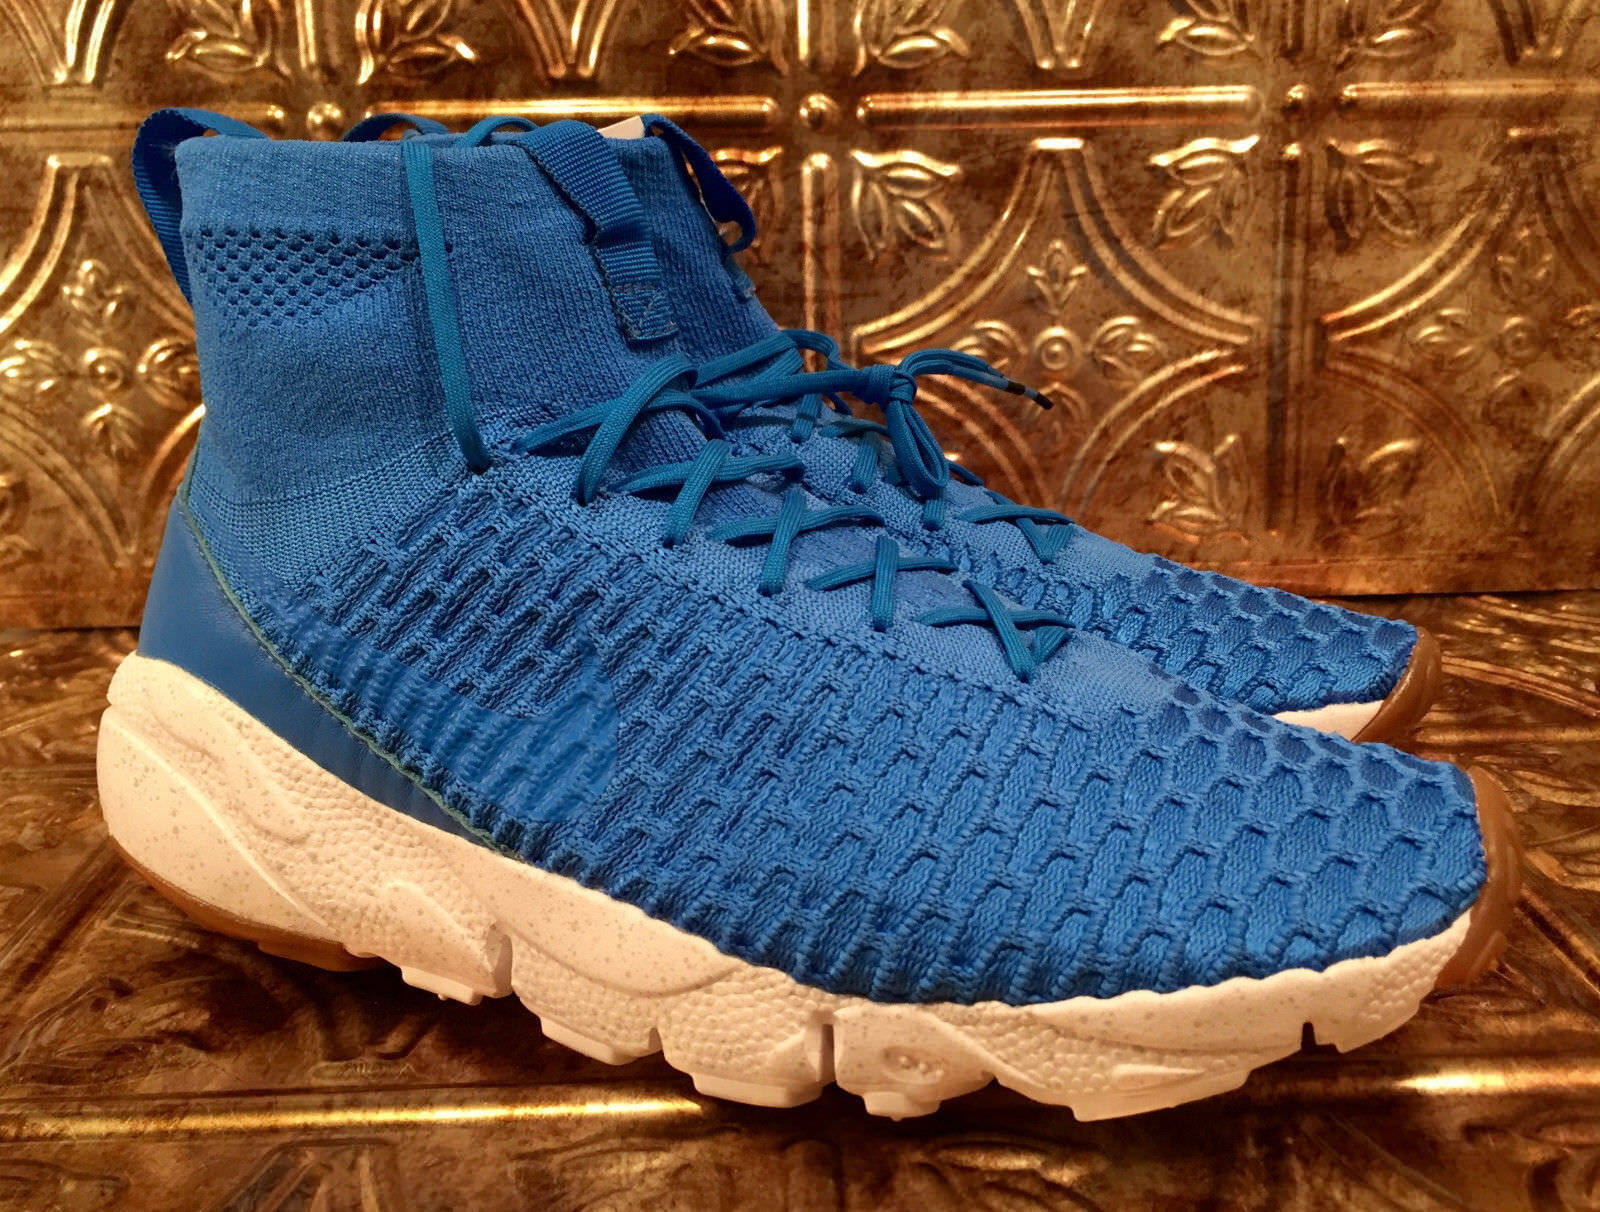 Nike Air Footscape Magista SP (652960-441) Men's Sizes 6-8.5